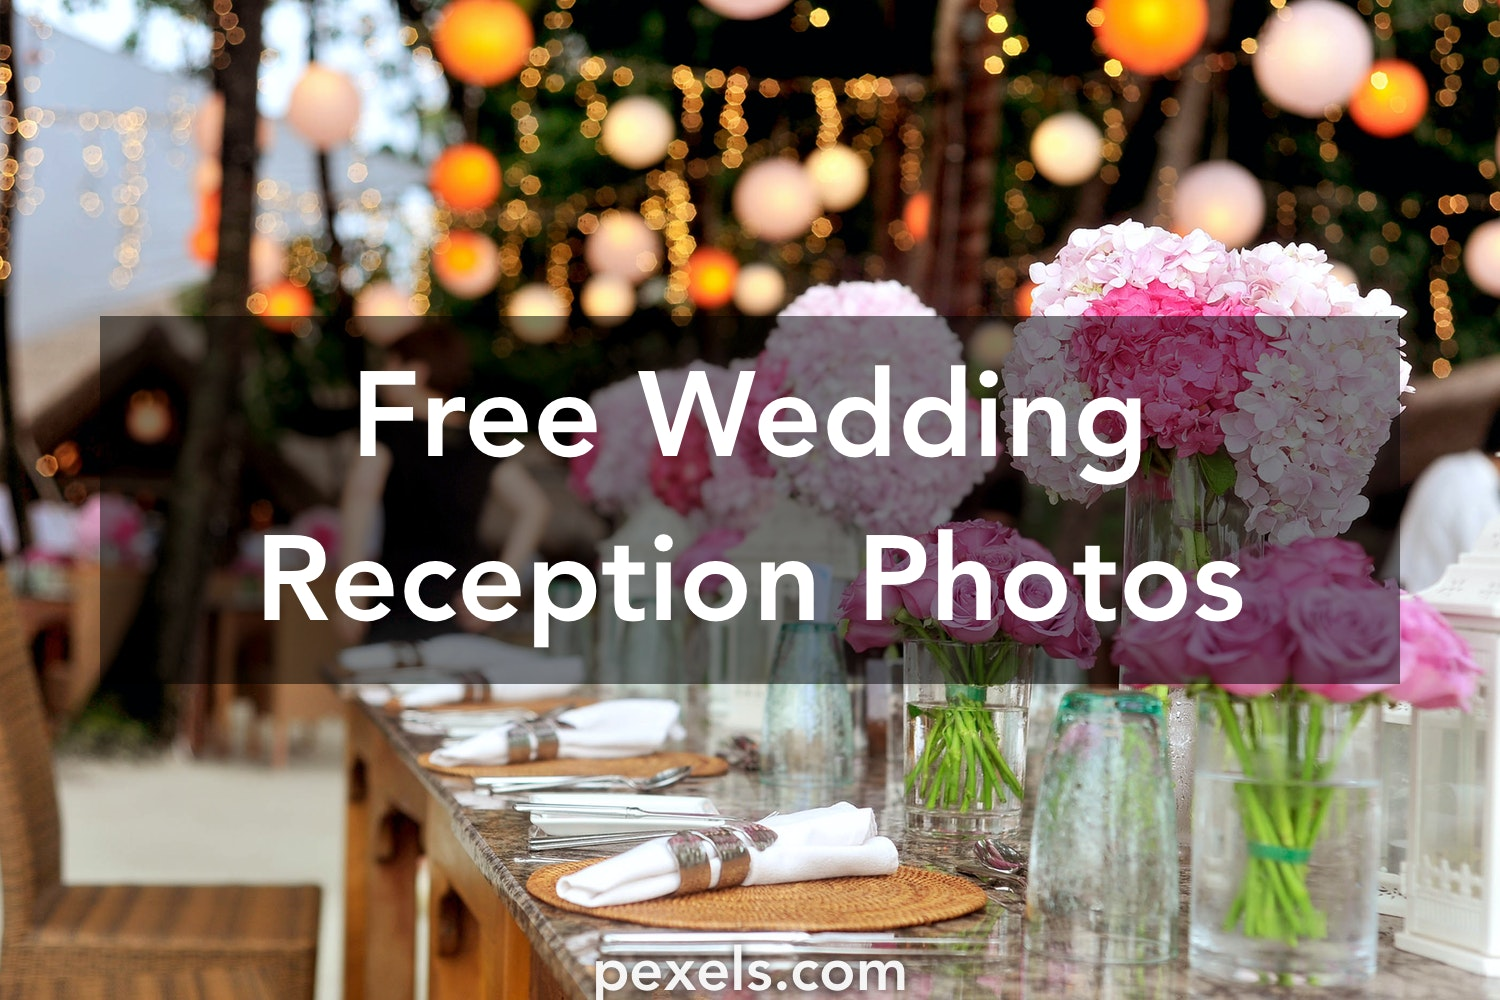 500 Great Wedding Reception Photos Pexels Free Stock Photos